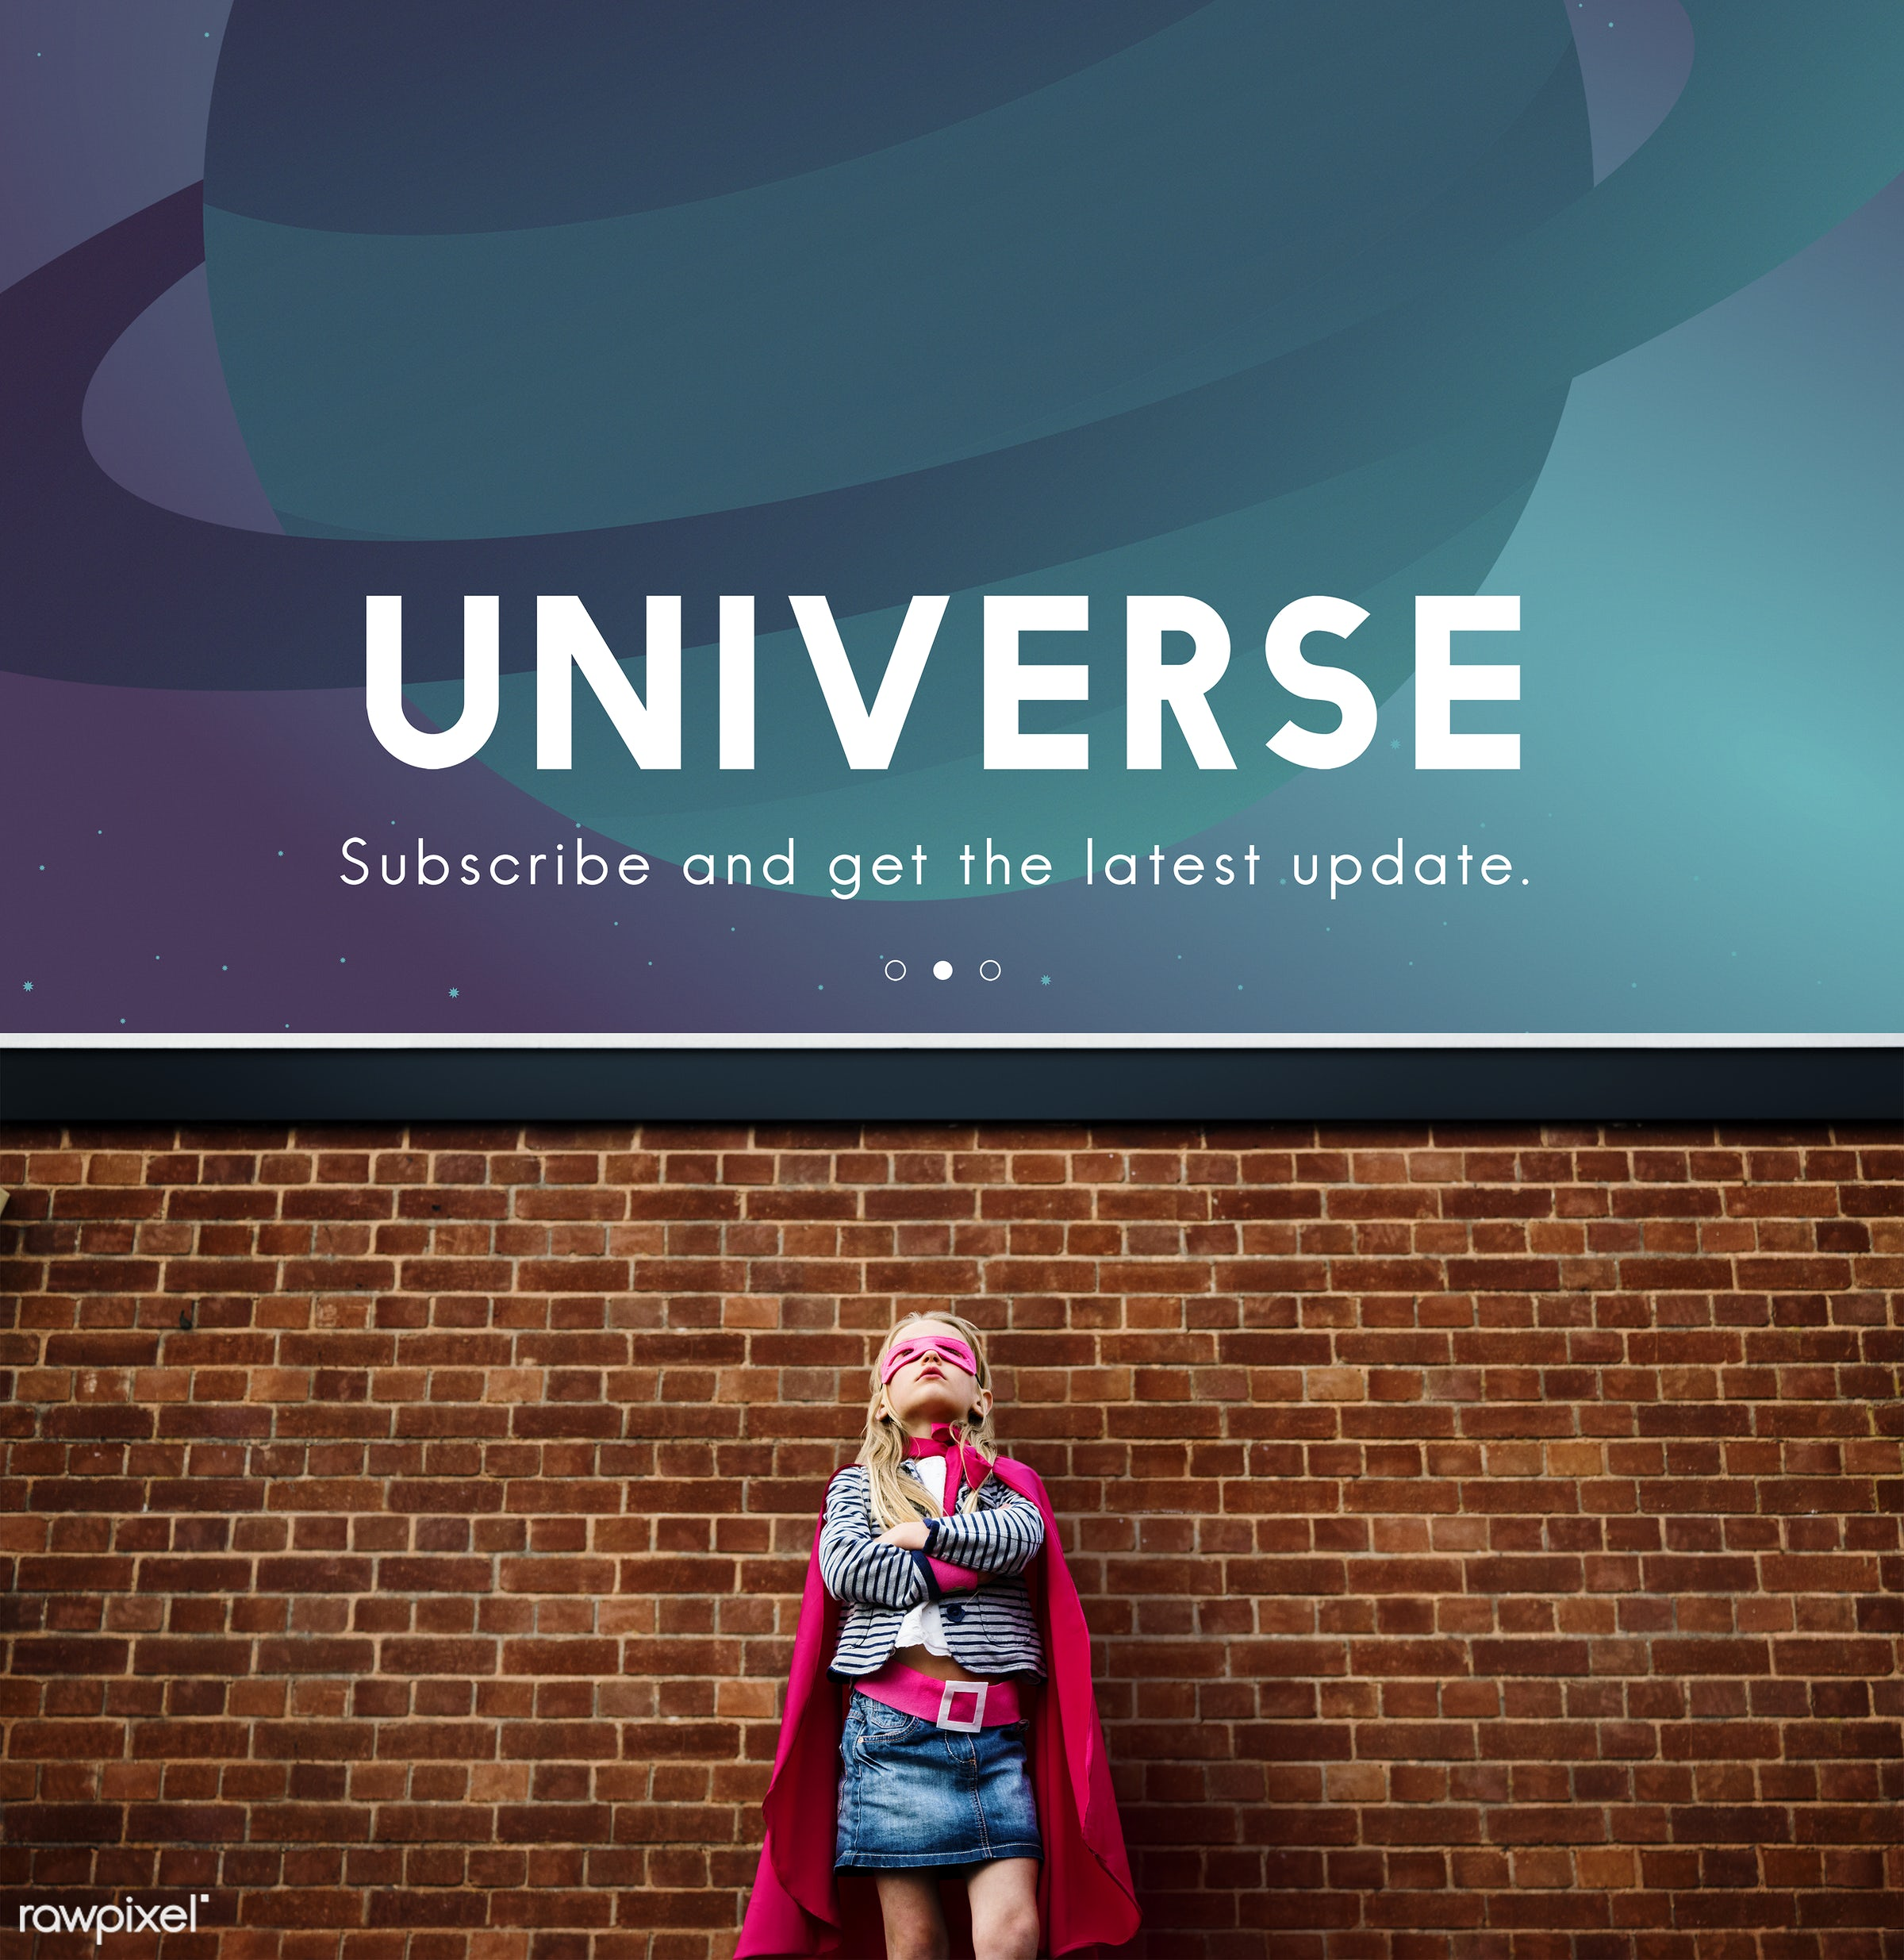 active, astronomy, brave, child, childhood, cosmos, costume, distant, dream, dressed up, galaxy, girl, graphic, hero,...